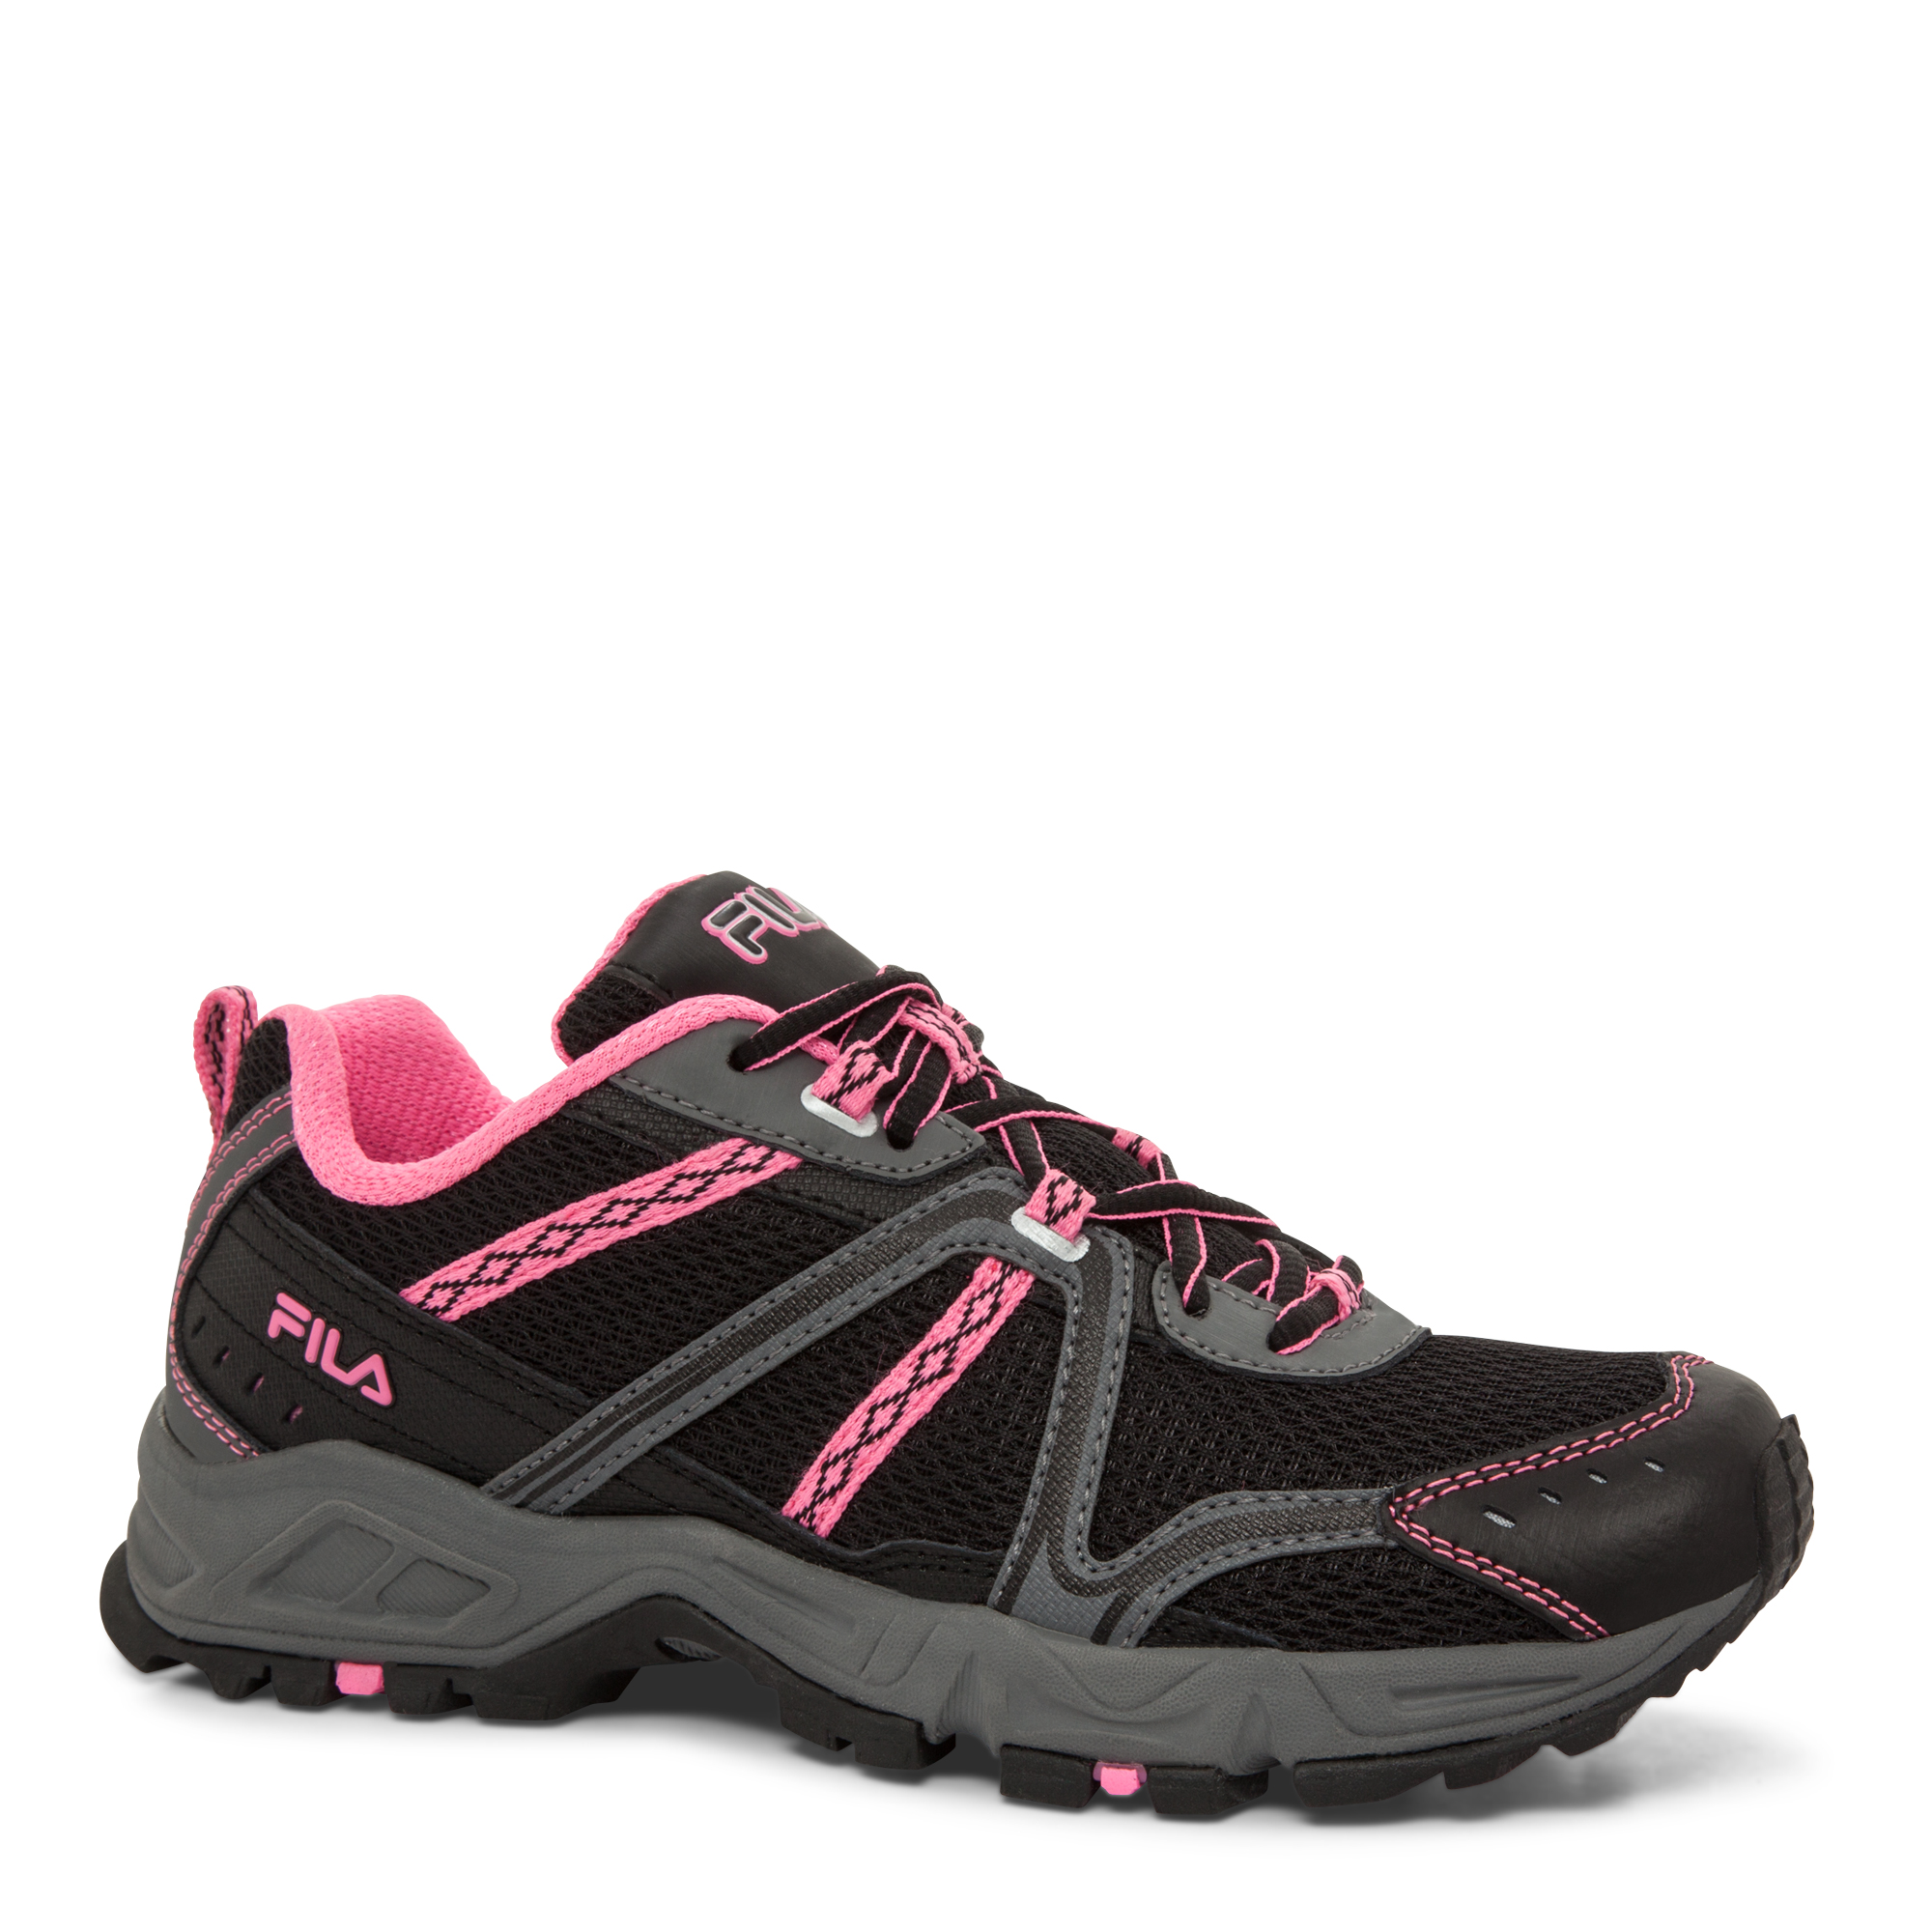 fila for women. fila-women-039-s-ascent-12-trail-shoe fila for women e